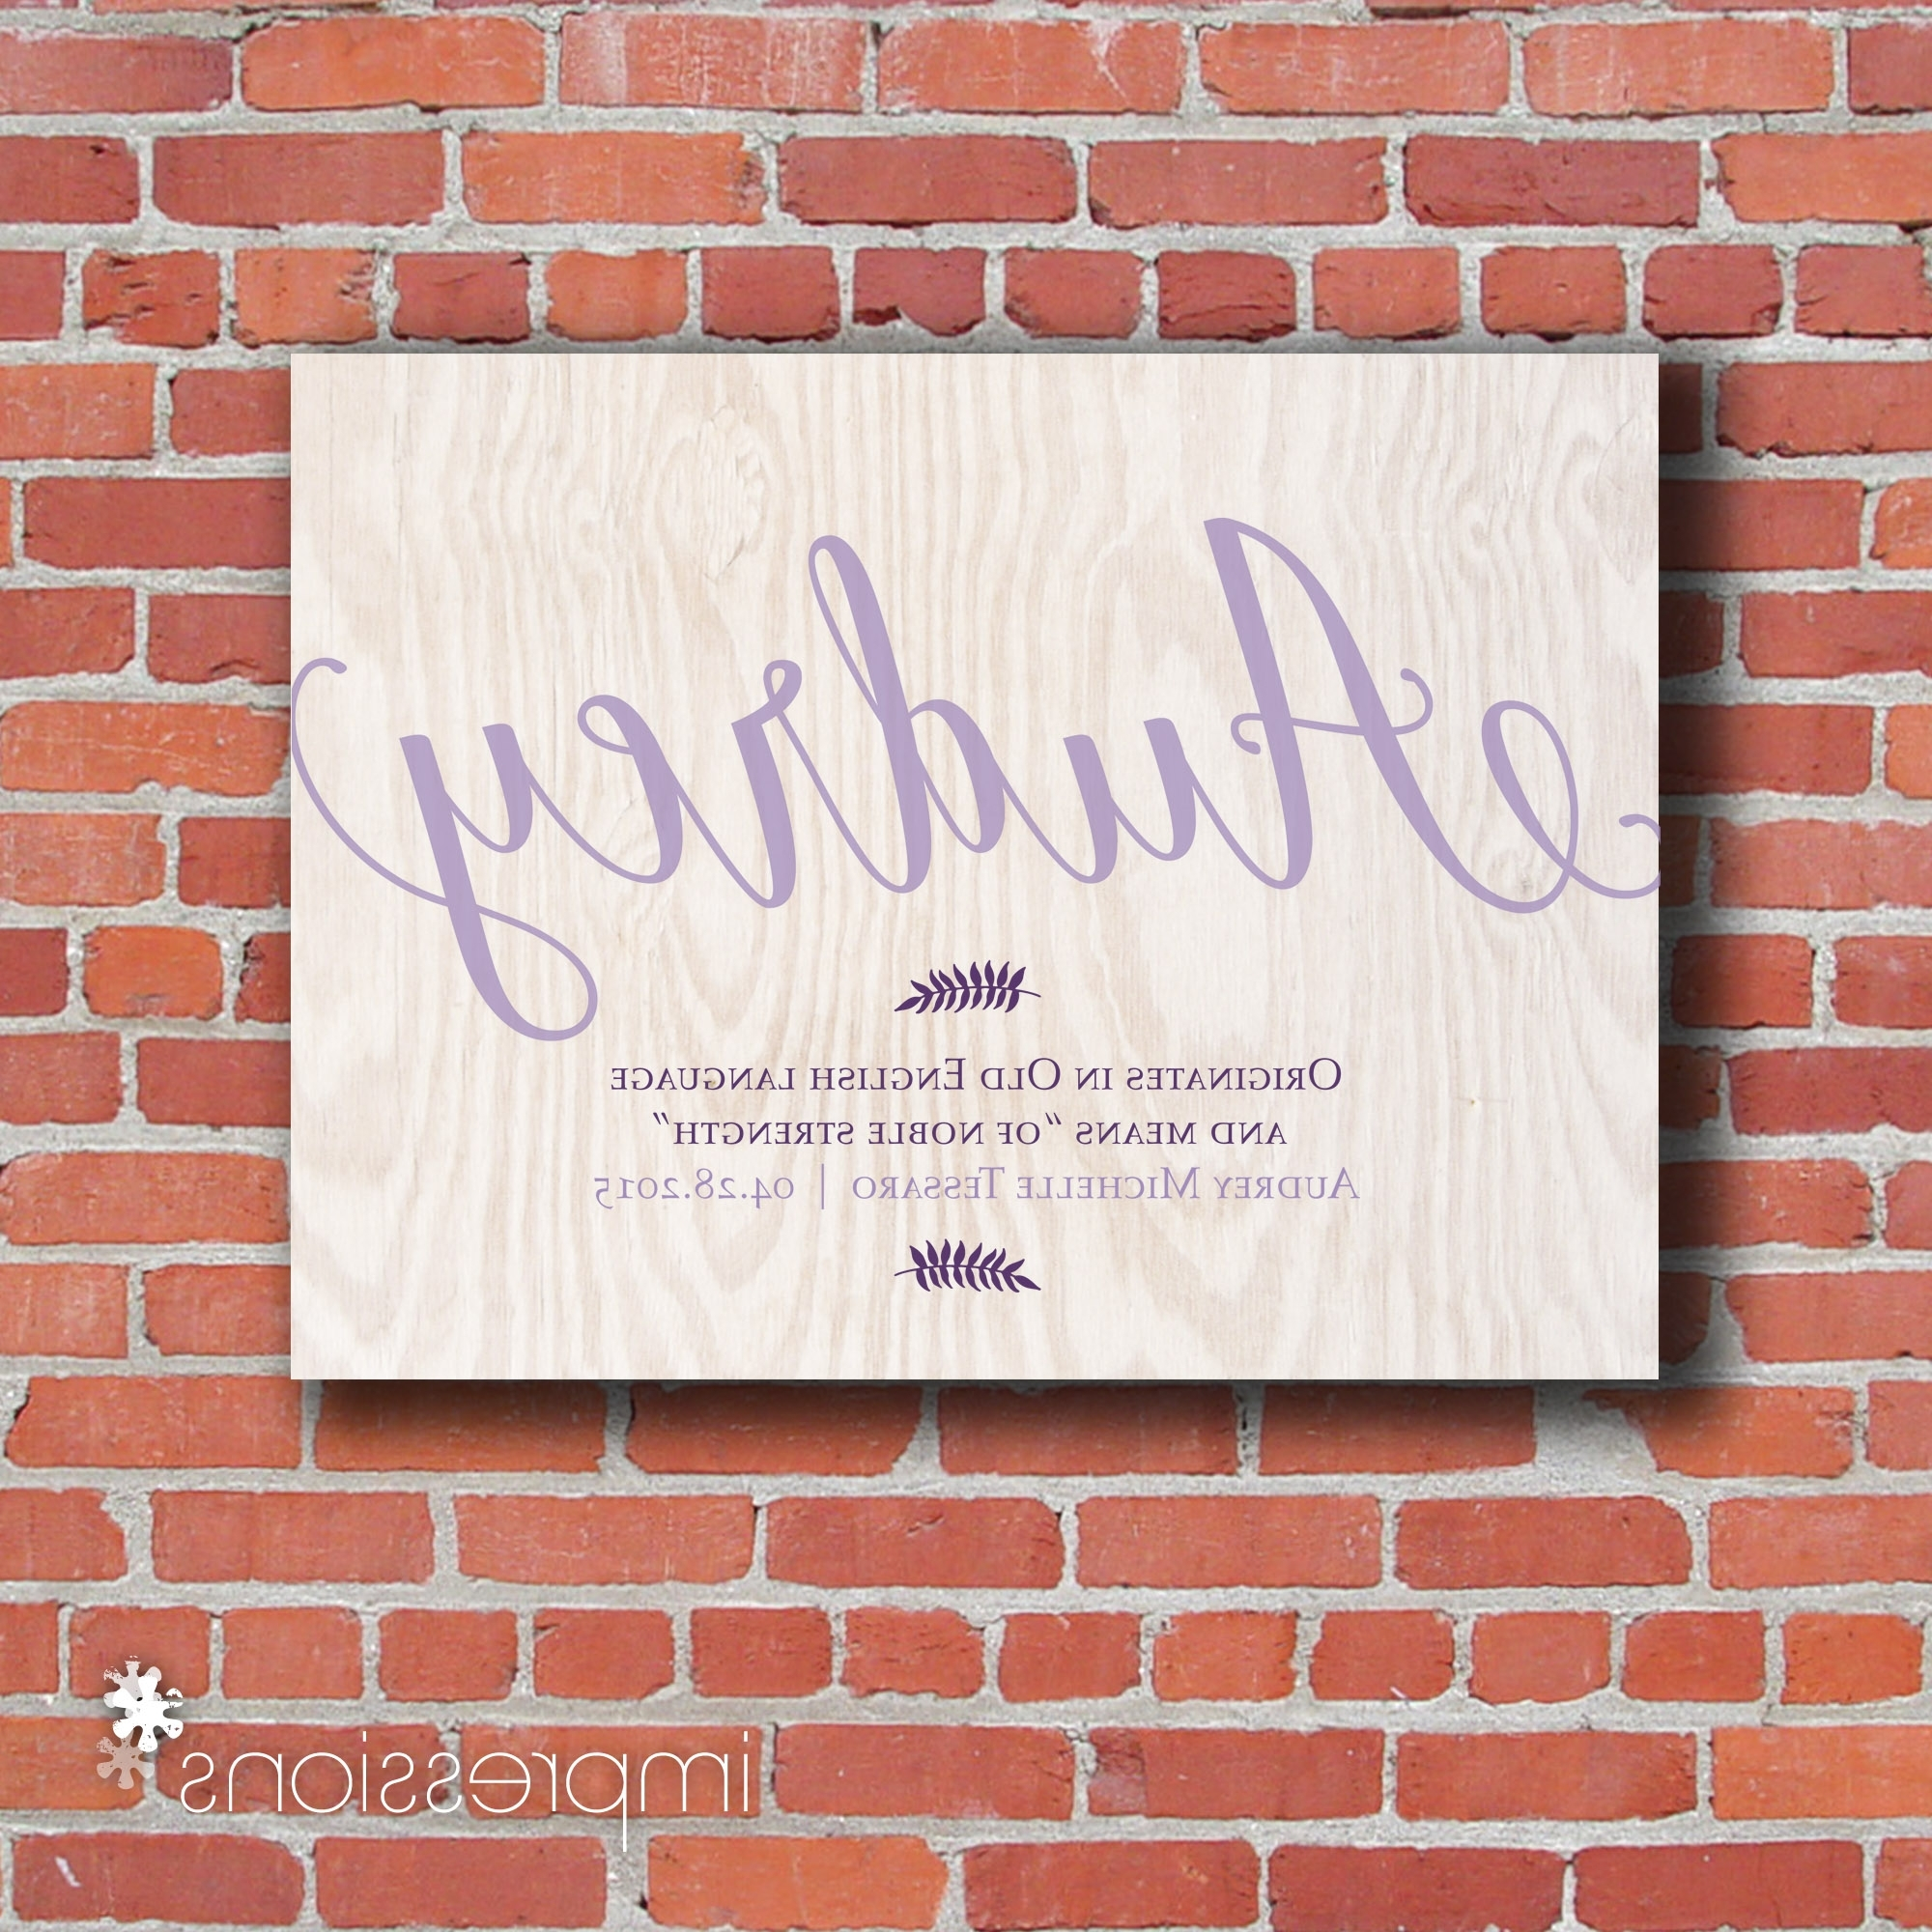 Baby Name Wall Art Inside Current Personalized Baby Name Wall Decor • Walls Decor (View 3 of 15)